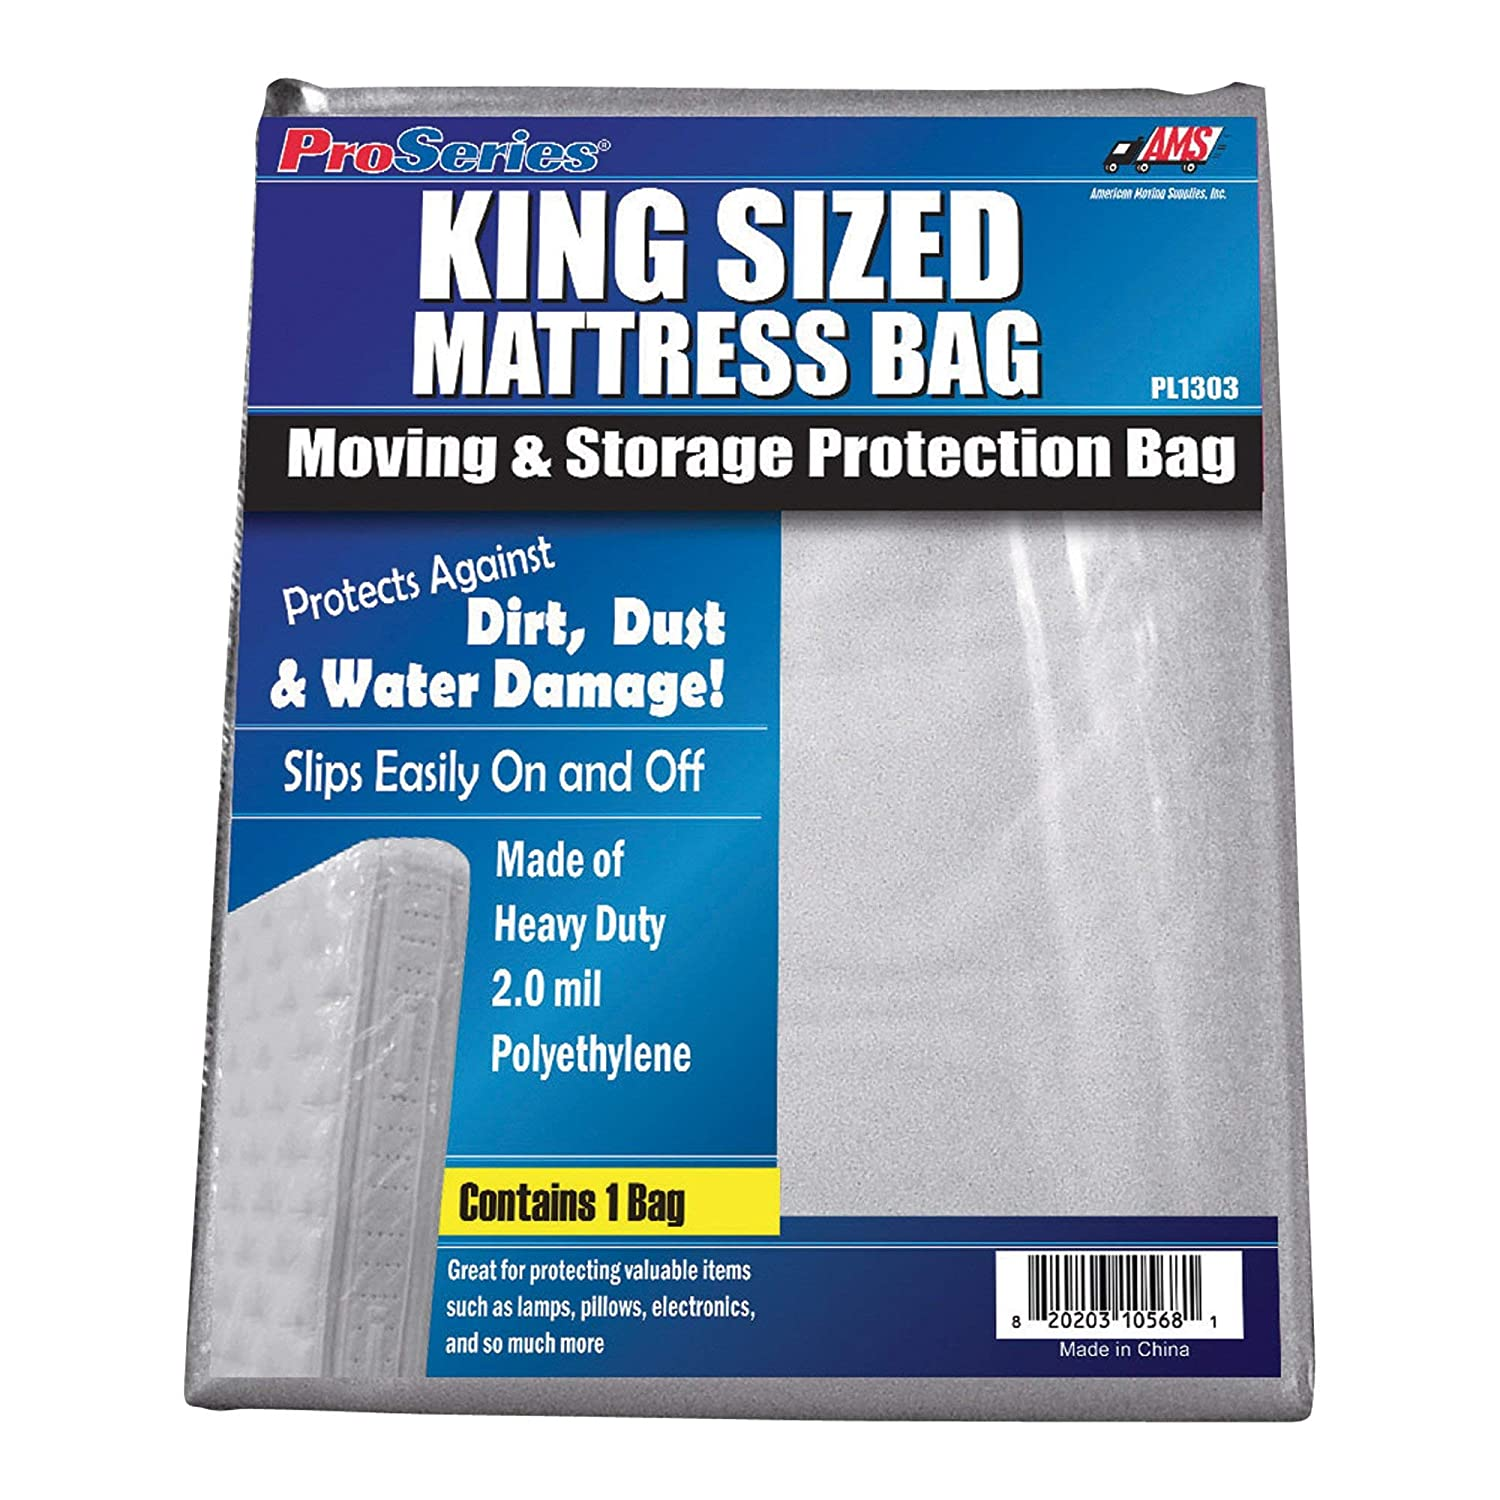 American Moving Supplies ProSeries Mattress Bag - King size bed, Model Number PI1303